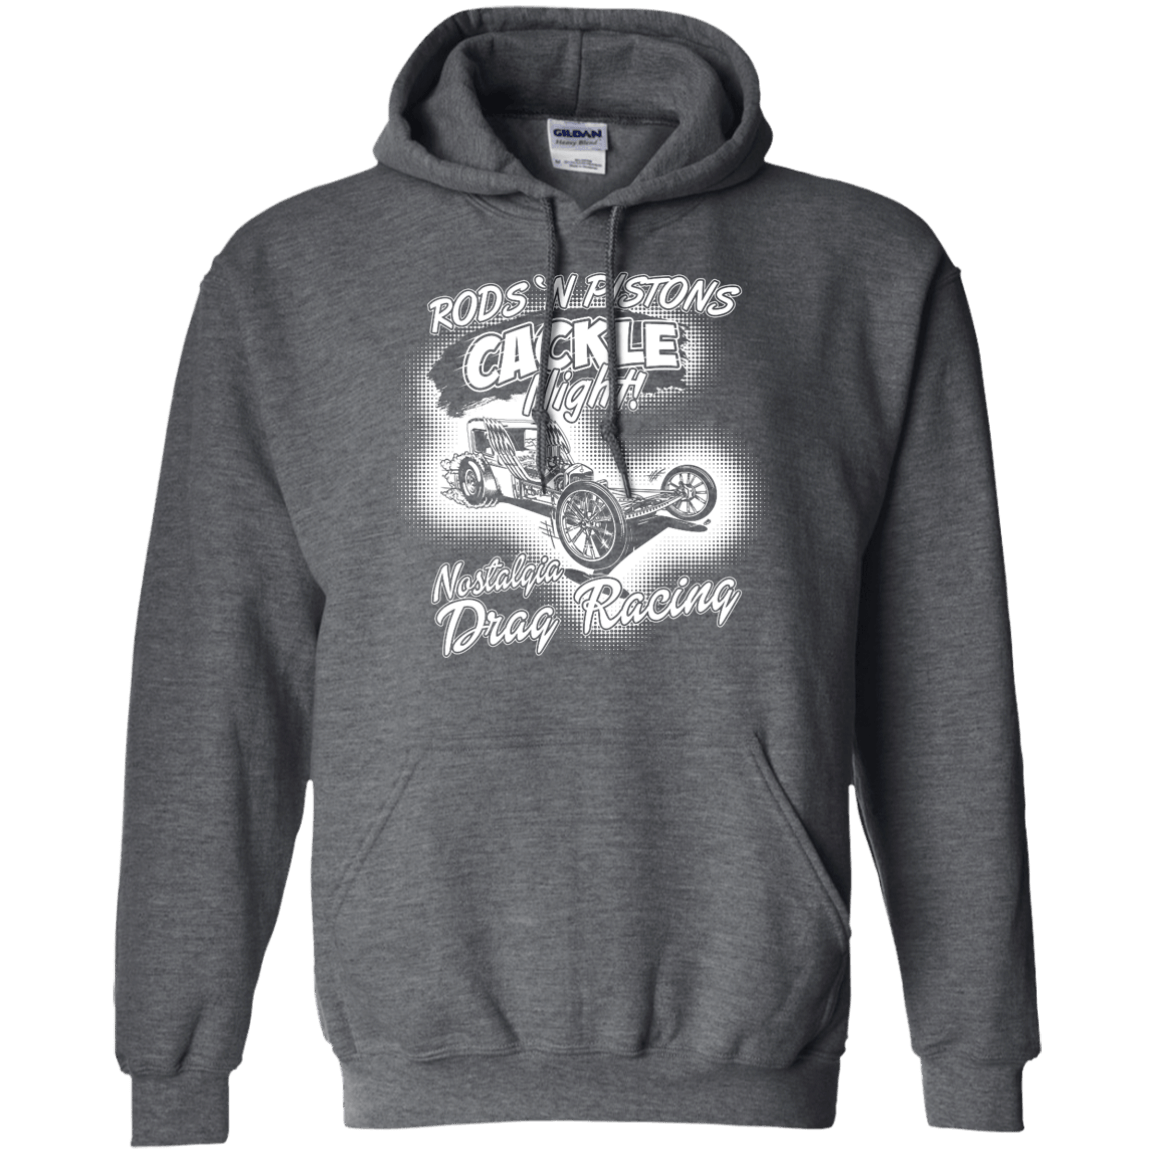 Rods 'N Pistons Cackle Night, Pullover Hoodie